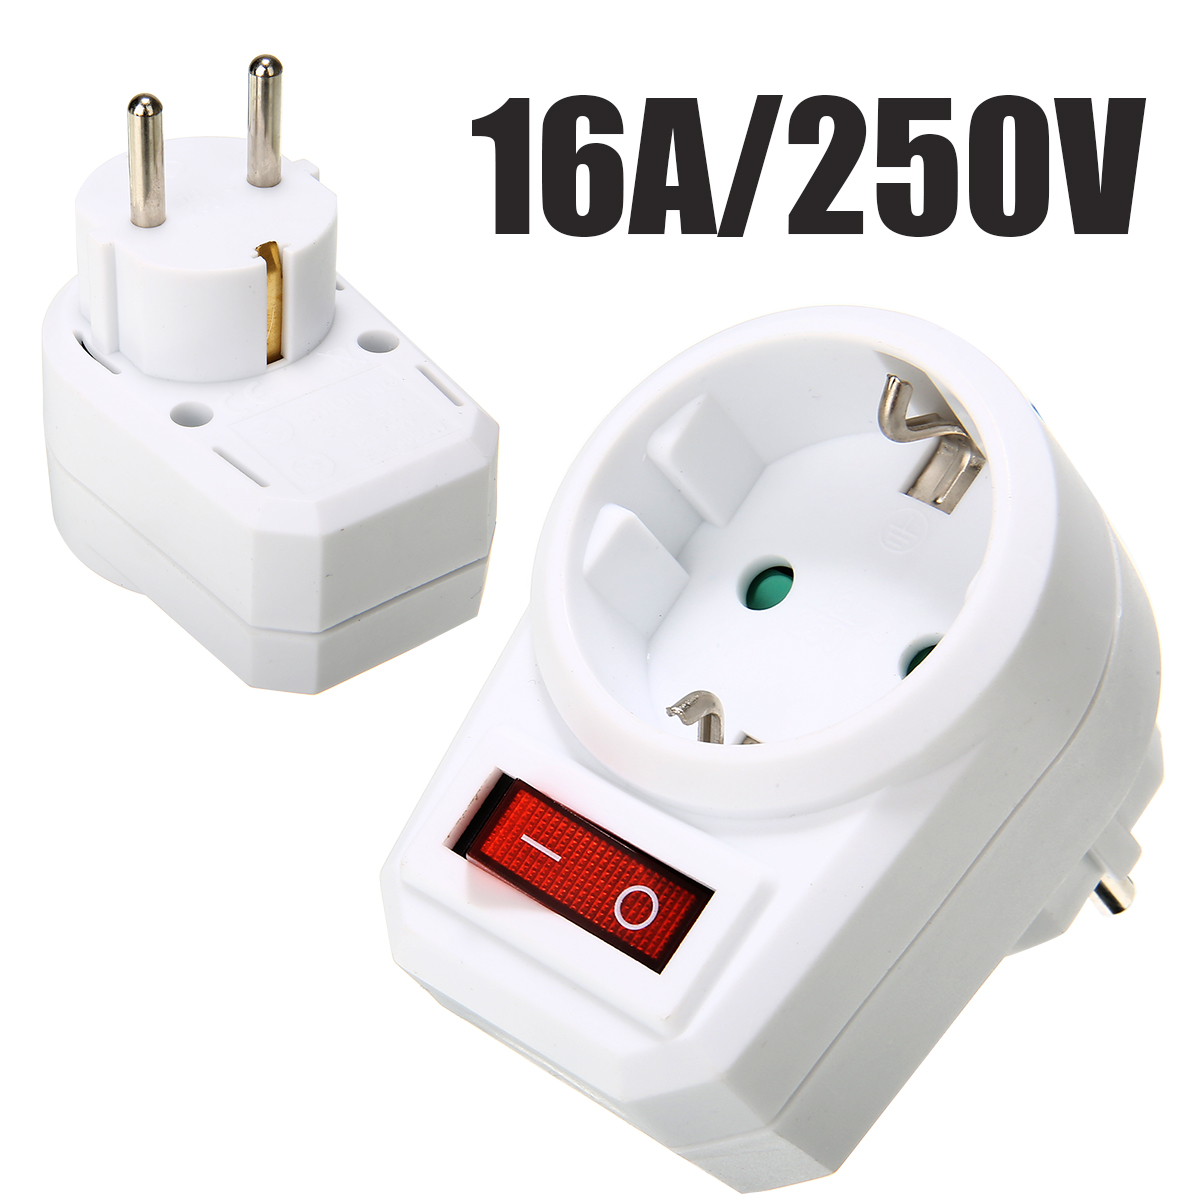 EU Conversion Socket 16A/250V Switchable Socket With Switch Socket Plug Power Portable Travel Converter Adapter